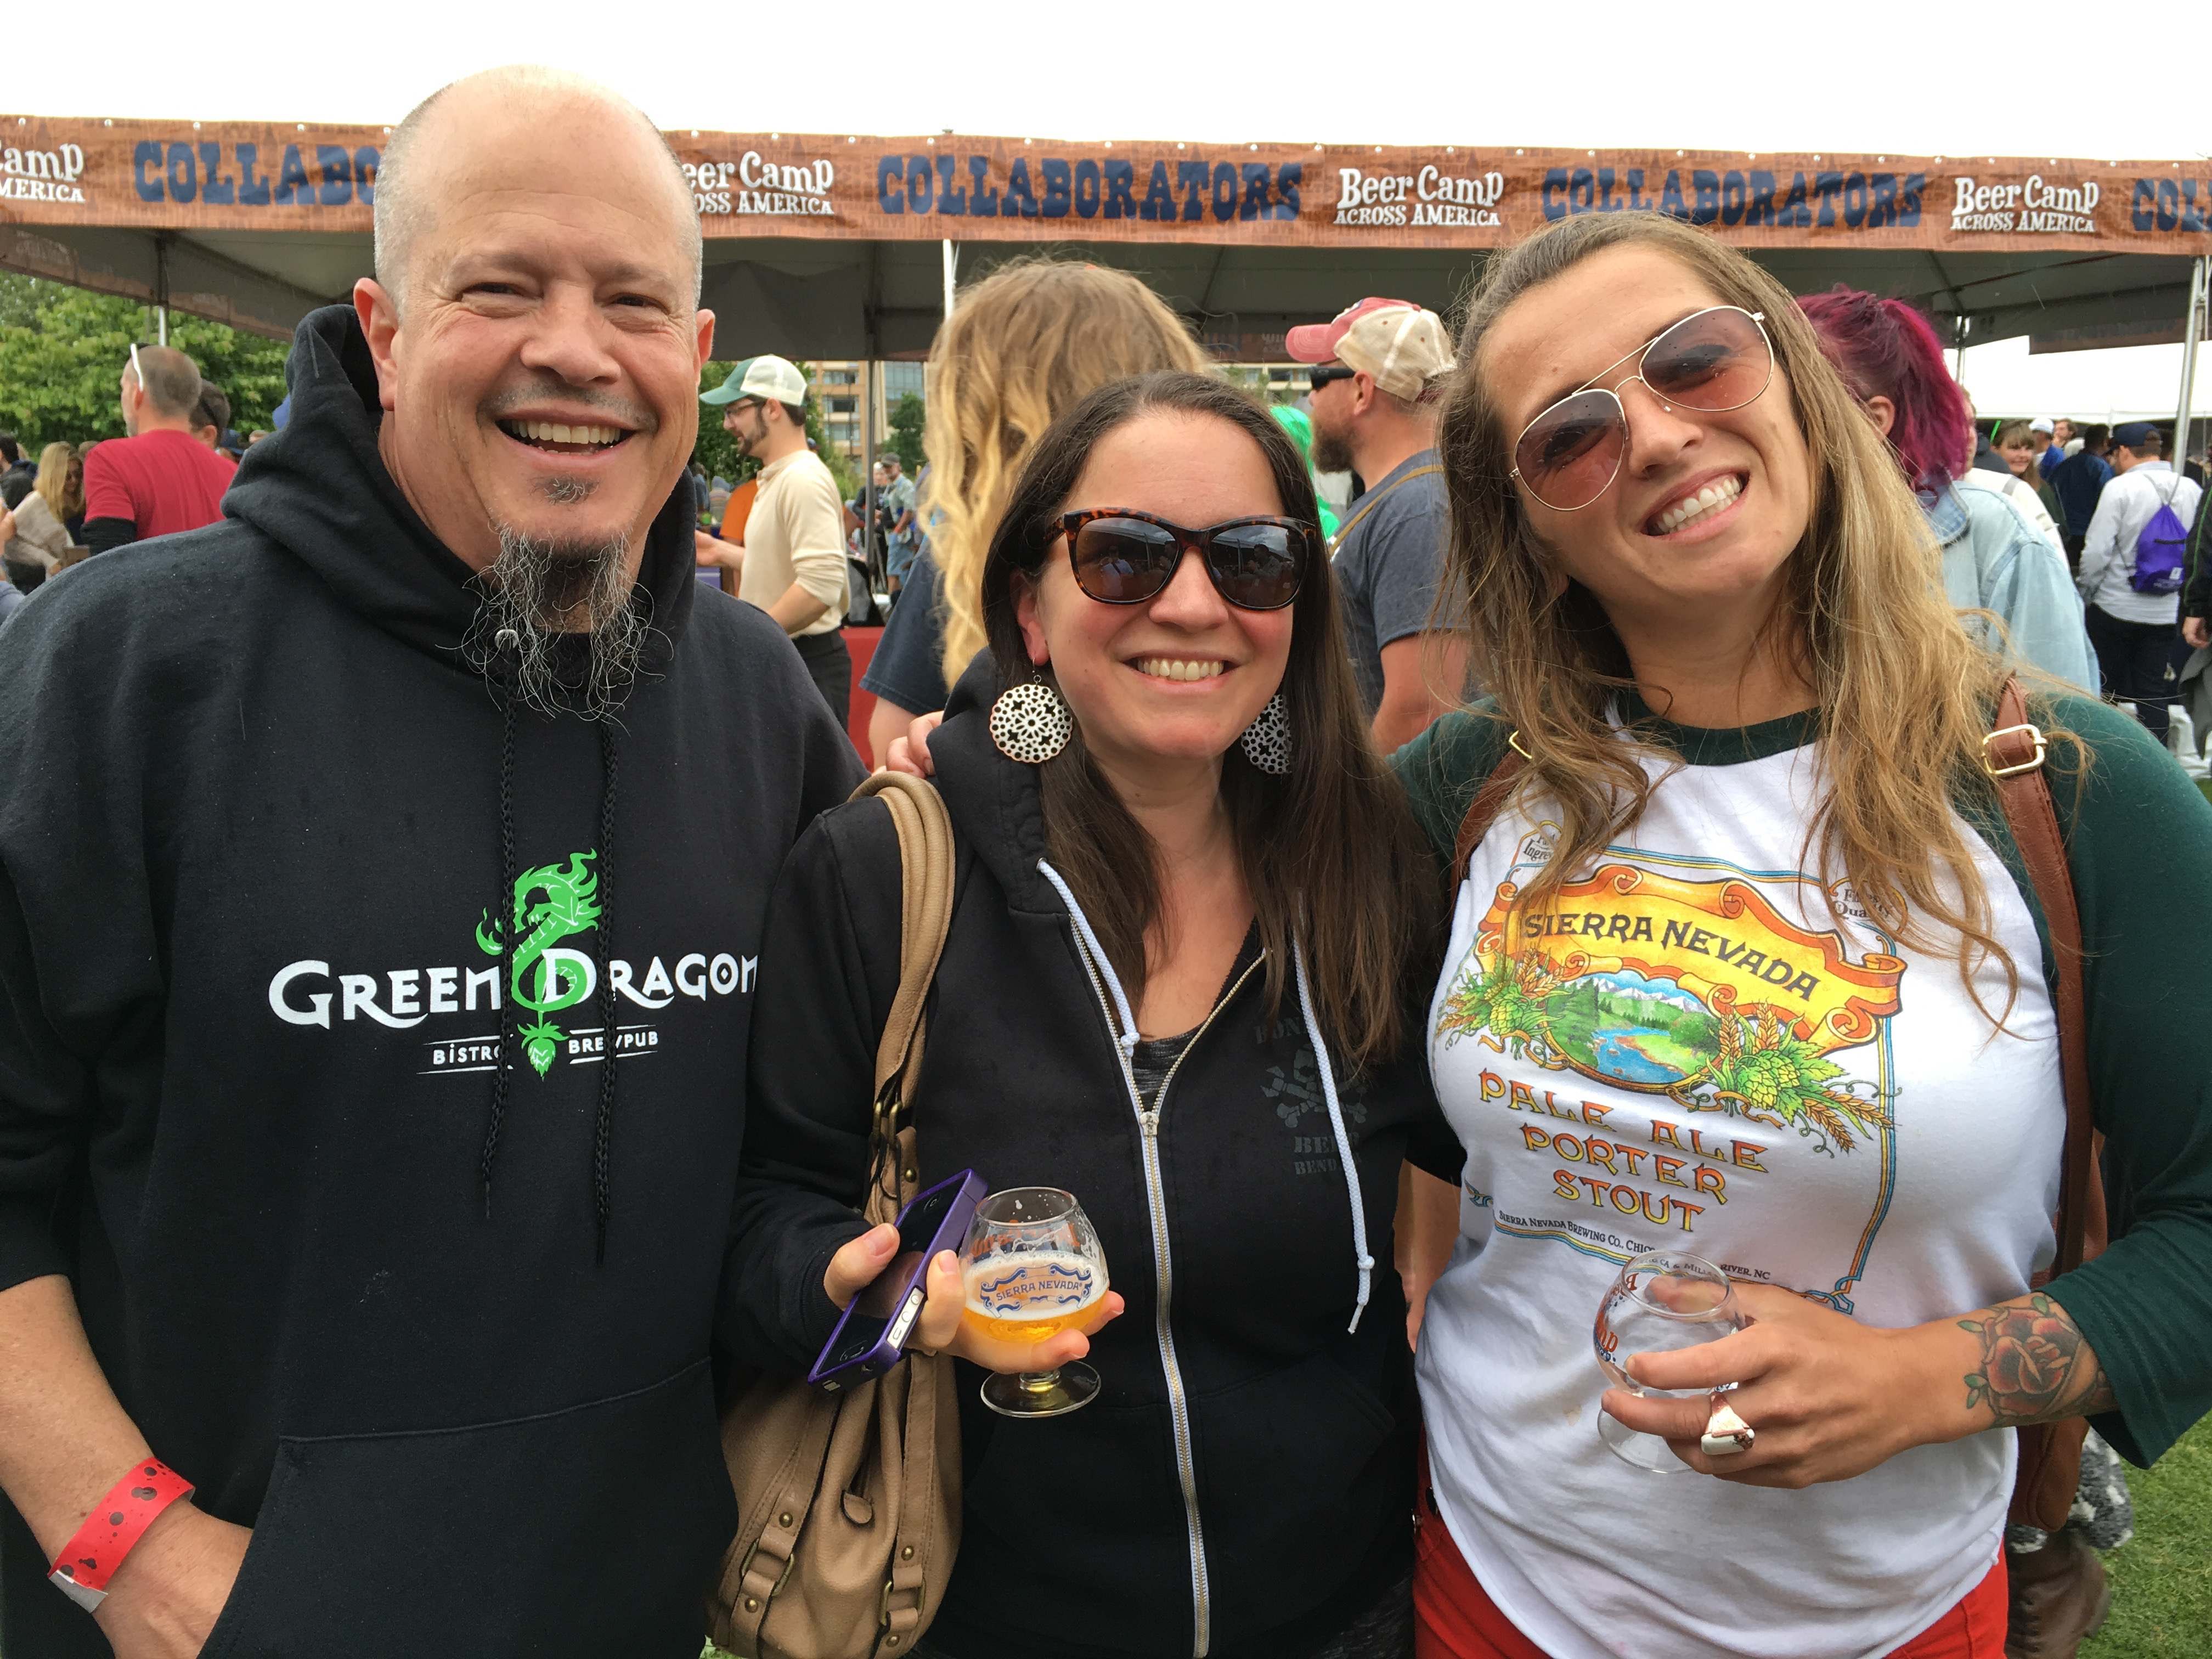 Russ and Lexie from Portland's Green Dragon with Kat Finn, Portland Sierra Nevada Representative at Beer Camp Across America Festival in Seattle. (photo by D.J. Paul)